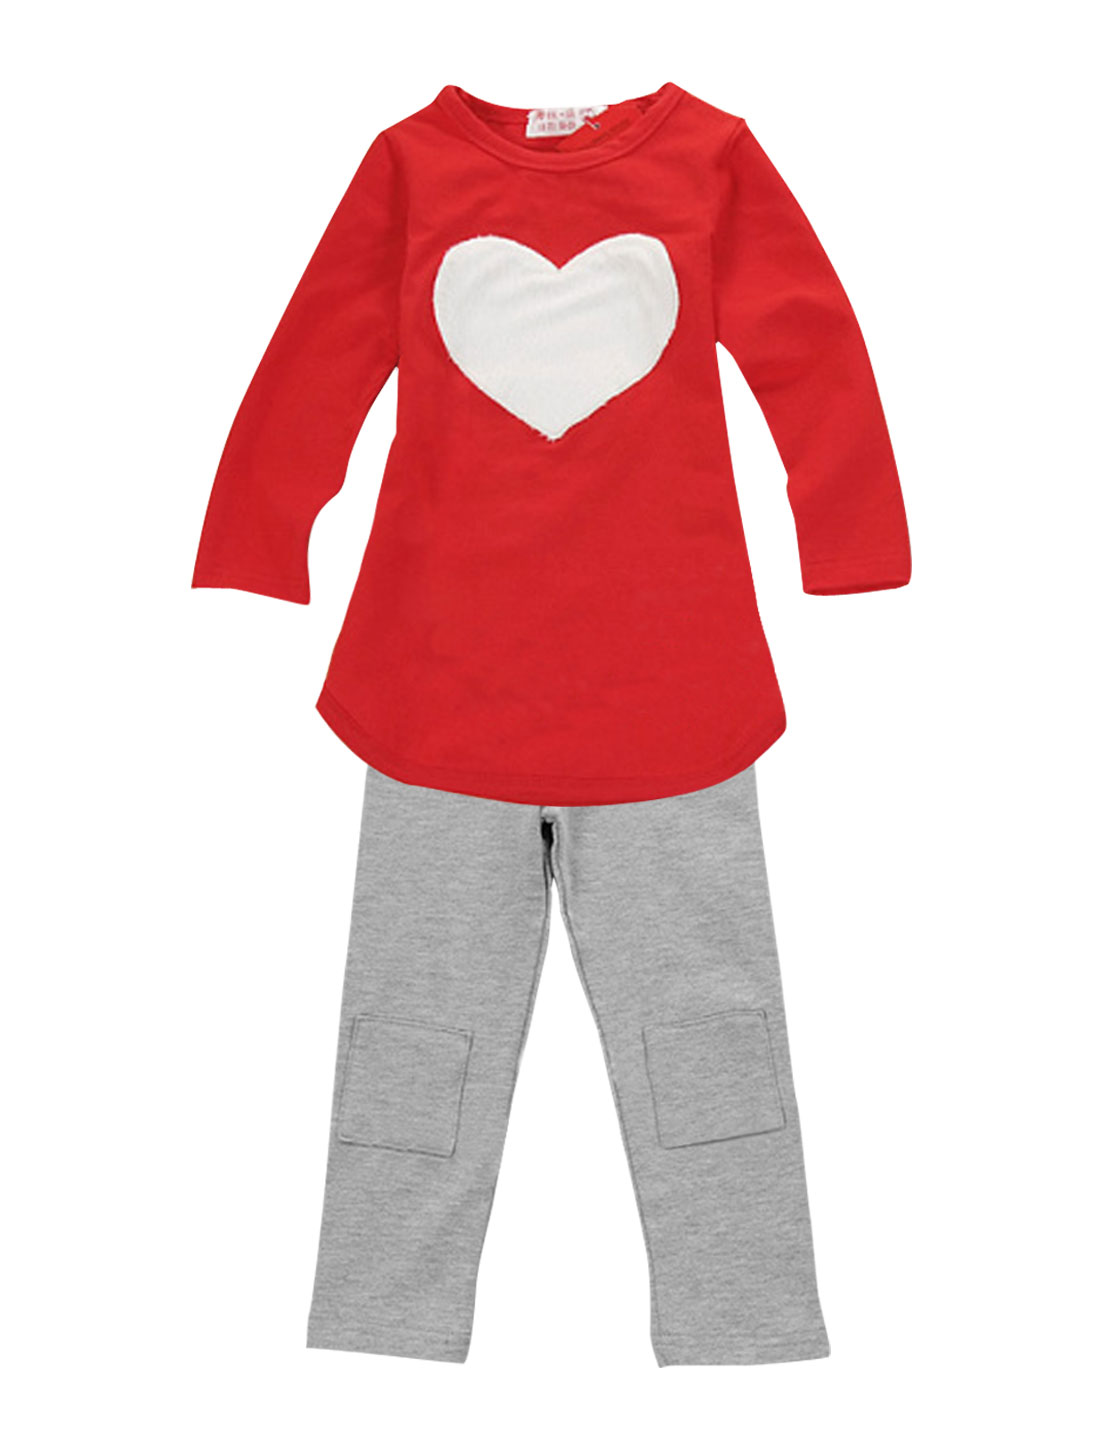 Girls Heart Shape Panel Top w Elastic Waist Pants Sets Red Gray 2T